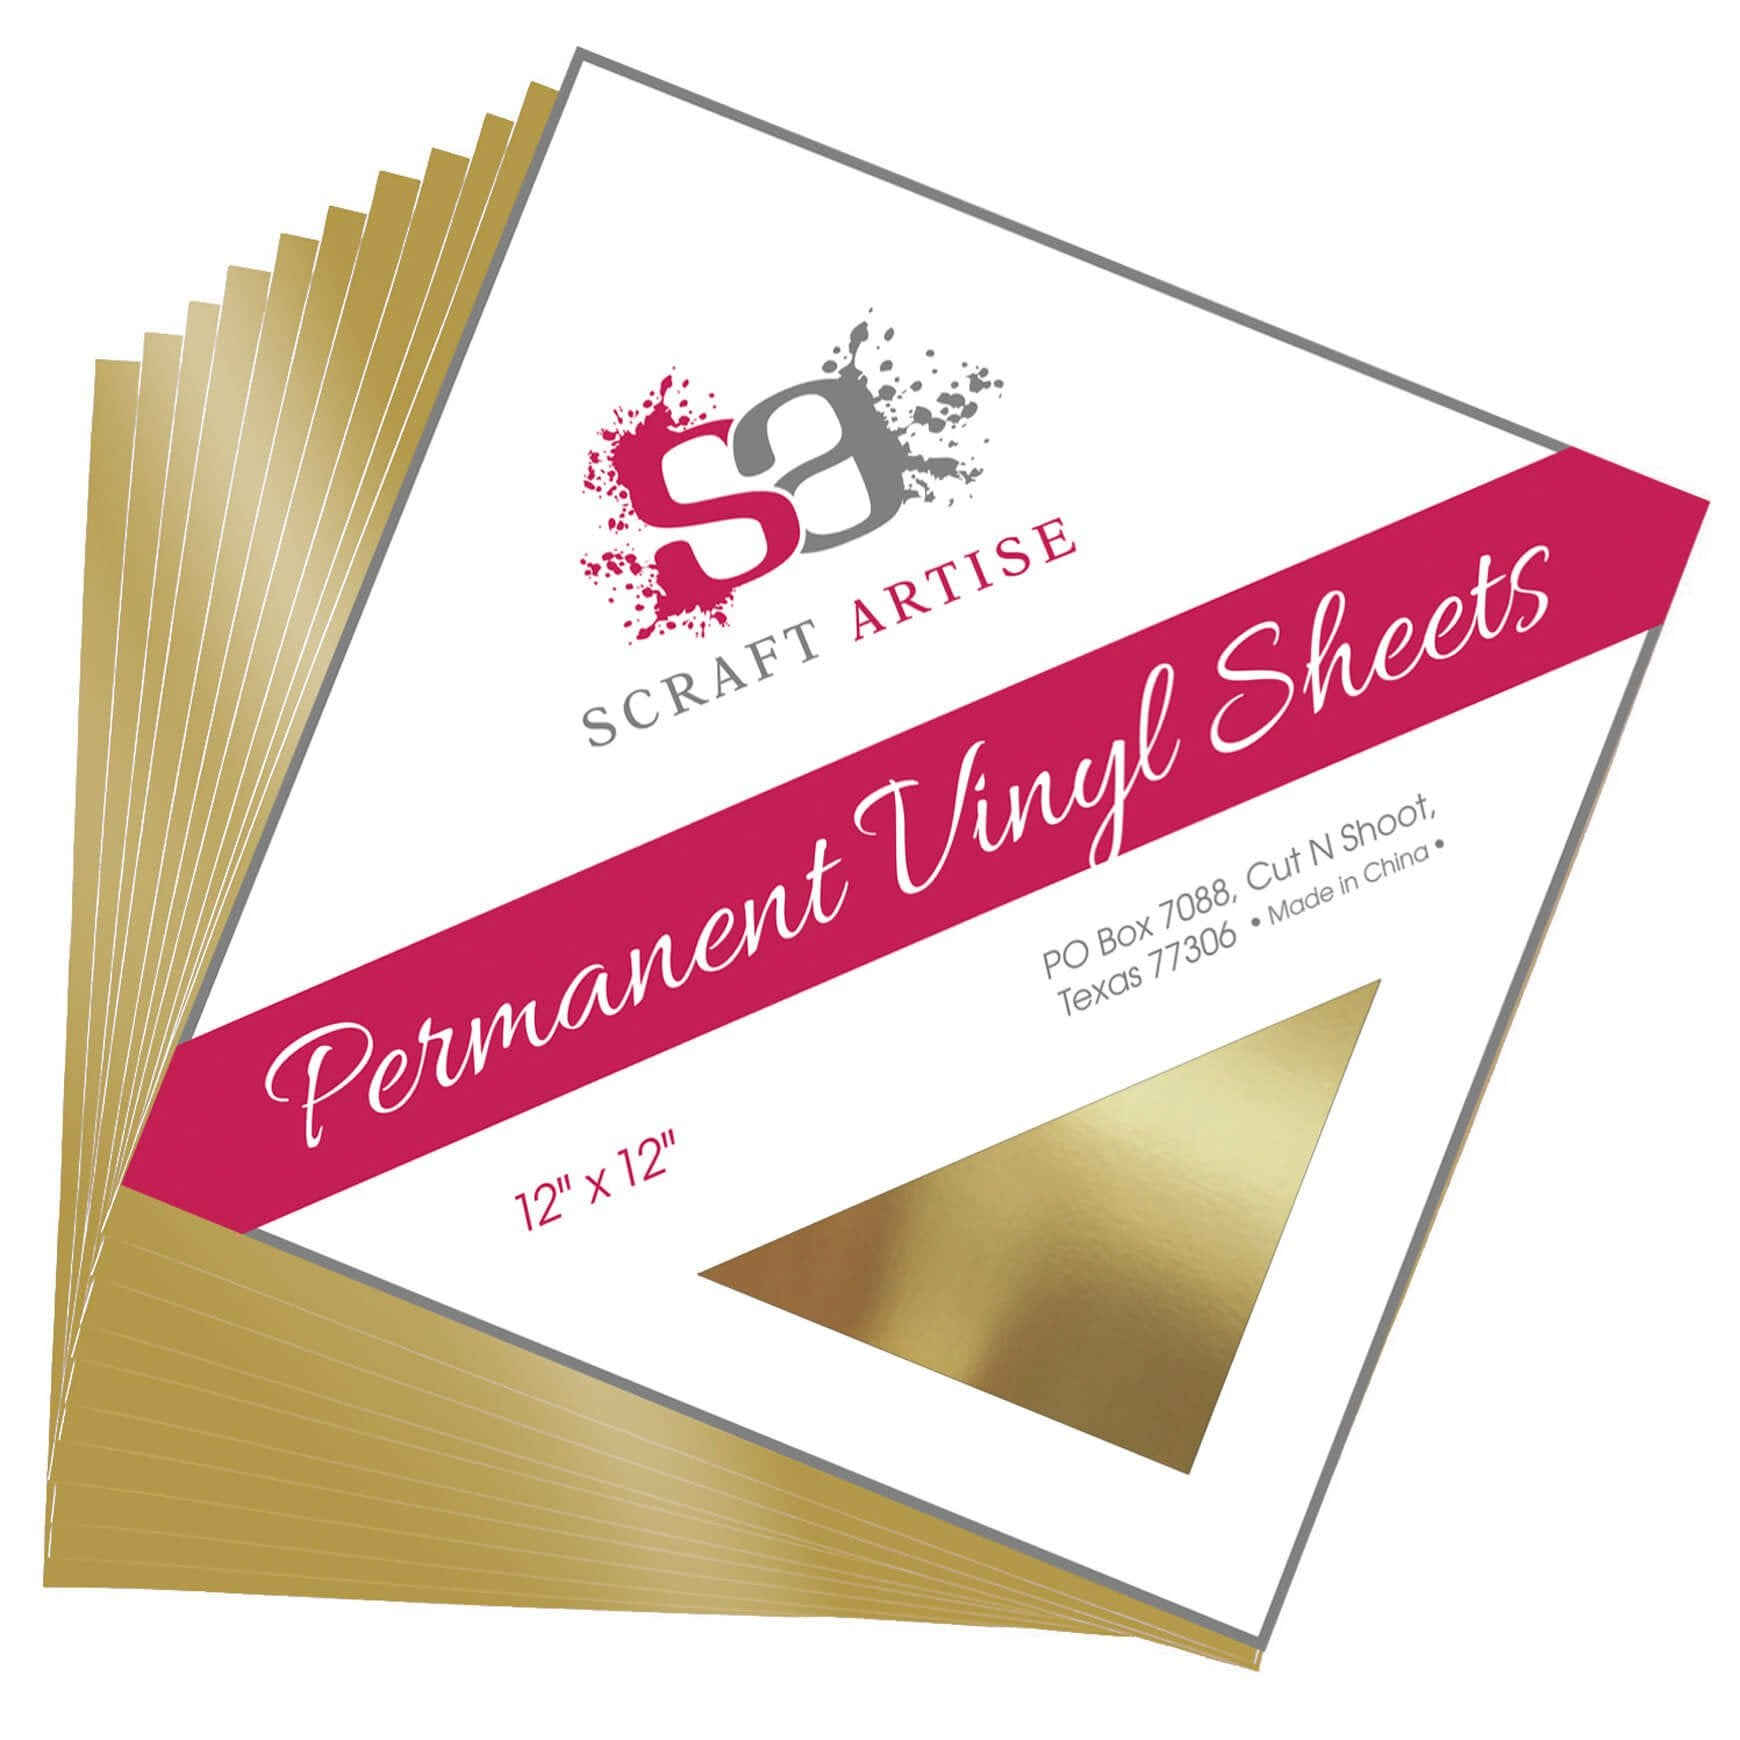 Scraft Artise Gold Metallic Glossy 12x12 Permanent Adhesive Craft Vinyl - 10 Pack